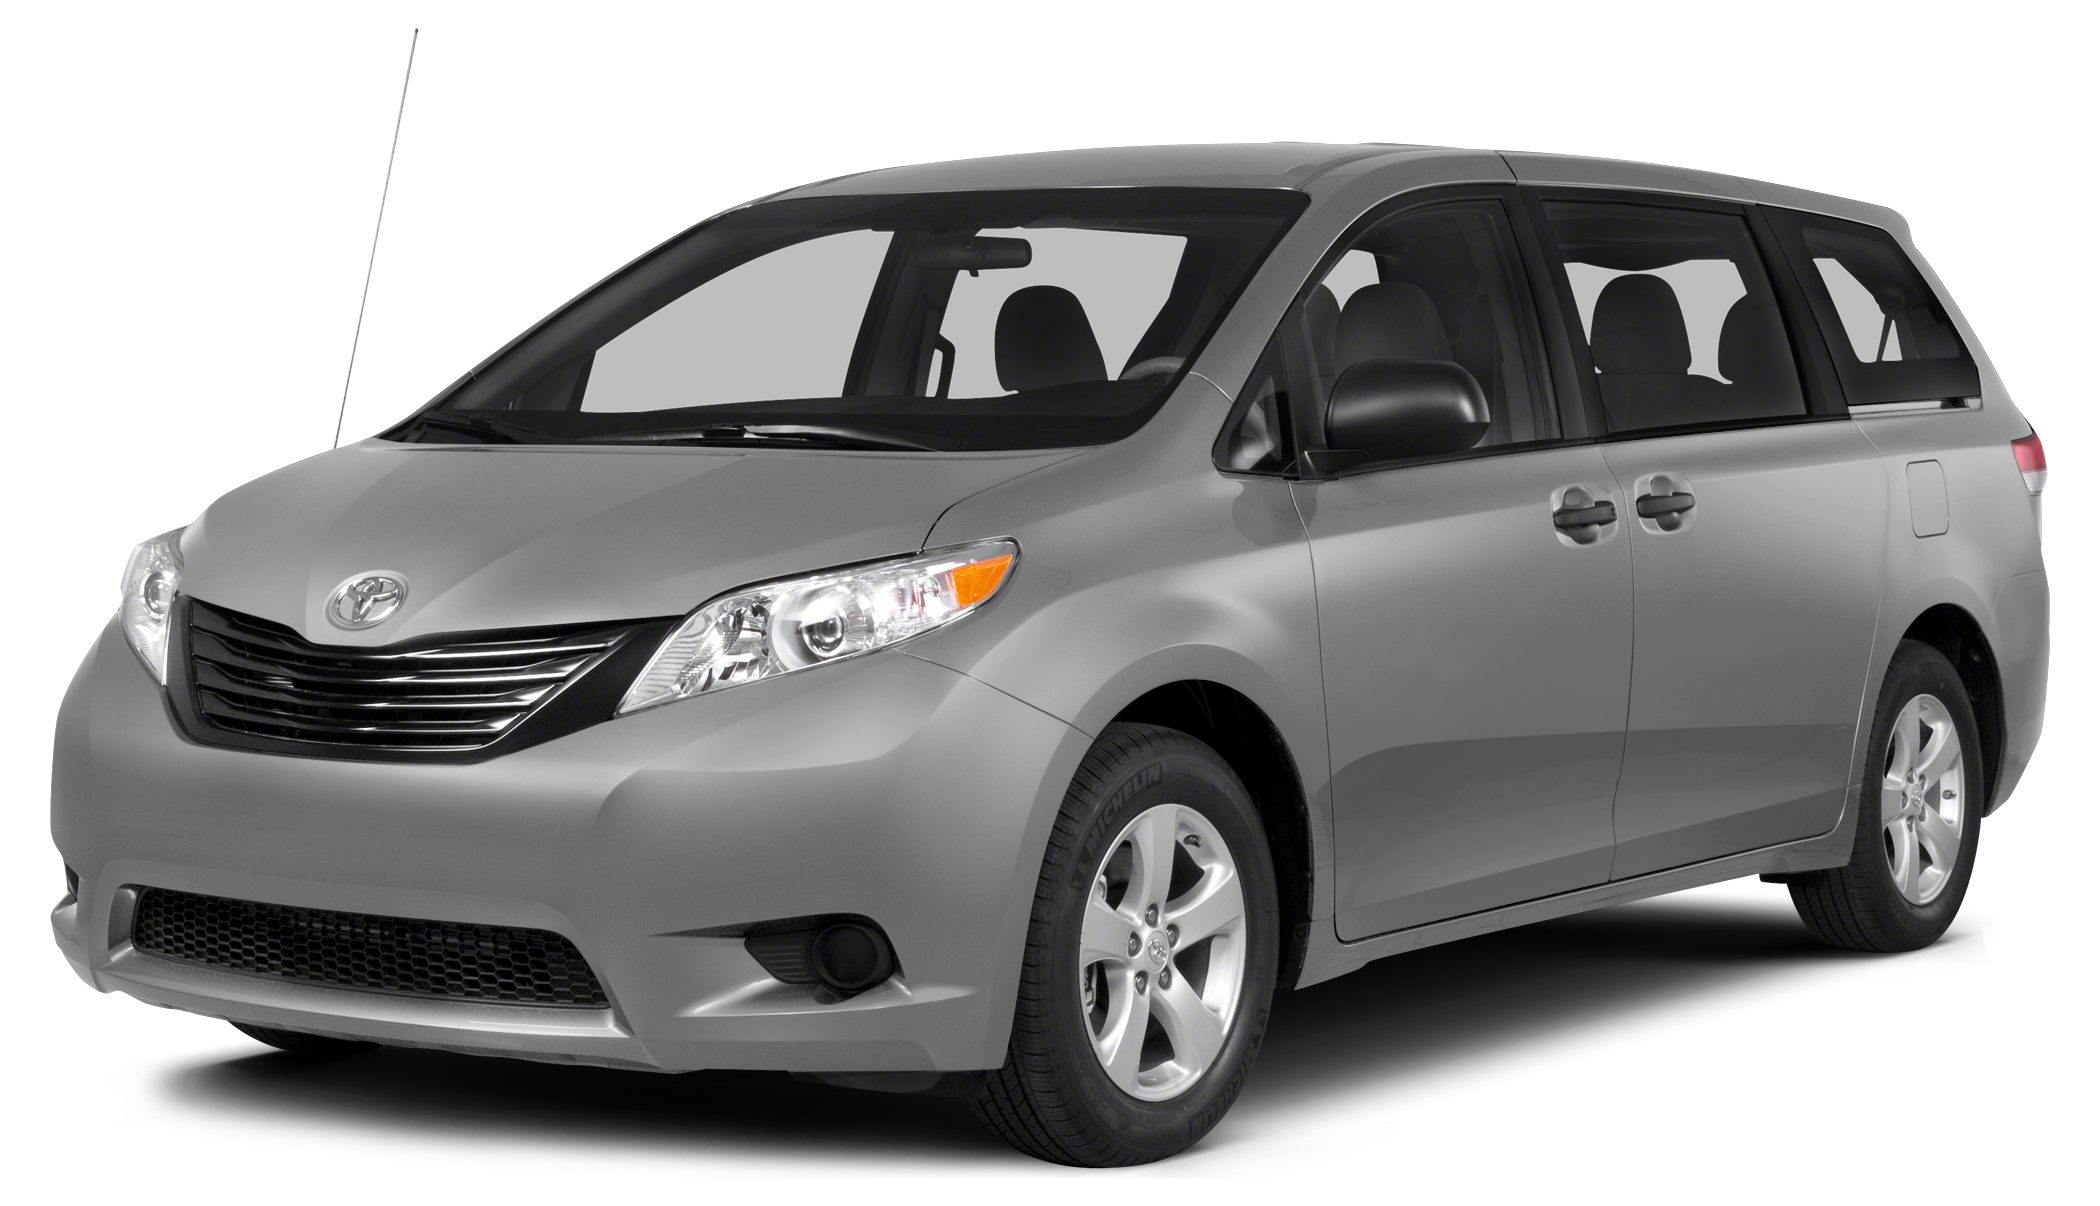 2014 Toyota Sienna XLE 8 Passenger XLE trim EPA 25 MPG Hwy18 MPG City CARFAX 1-Owner ONLY 319